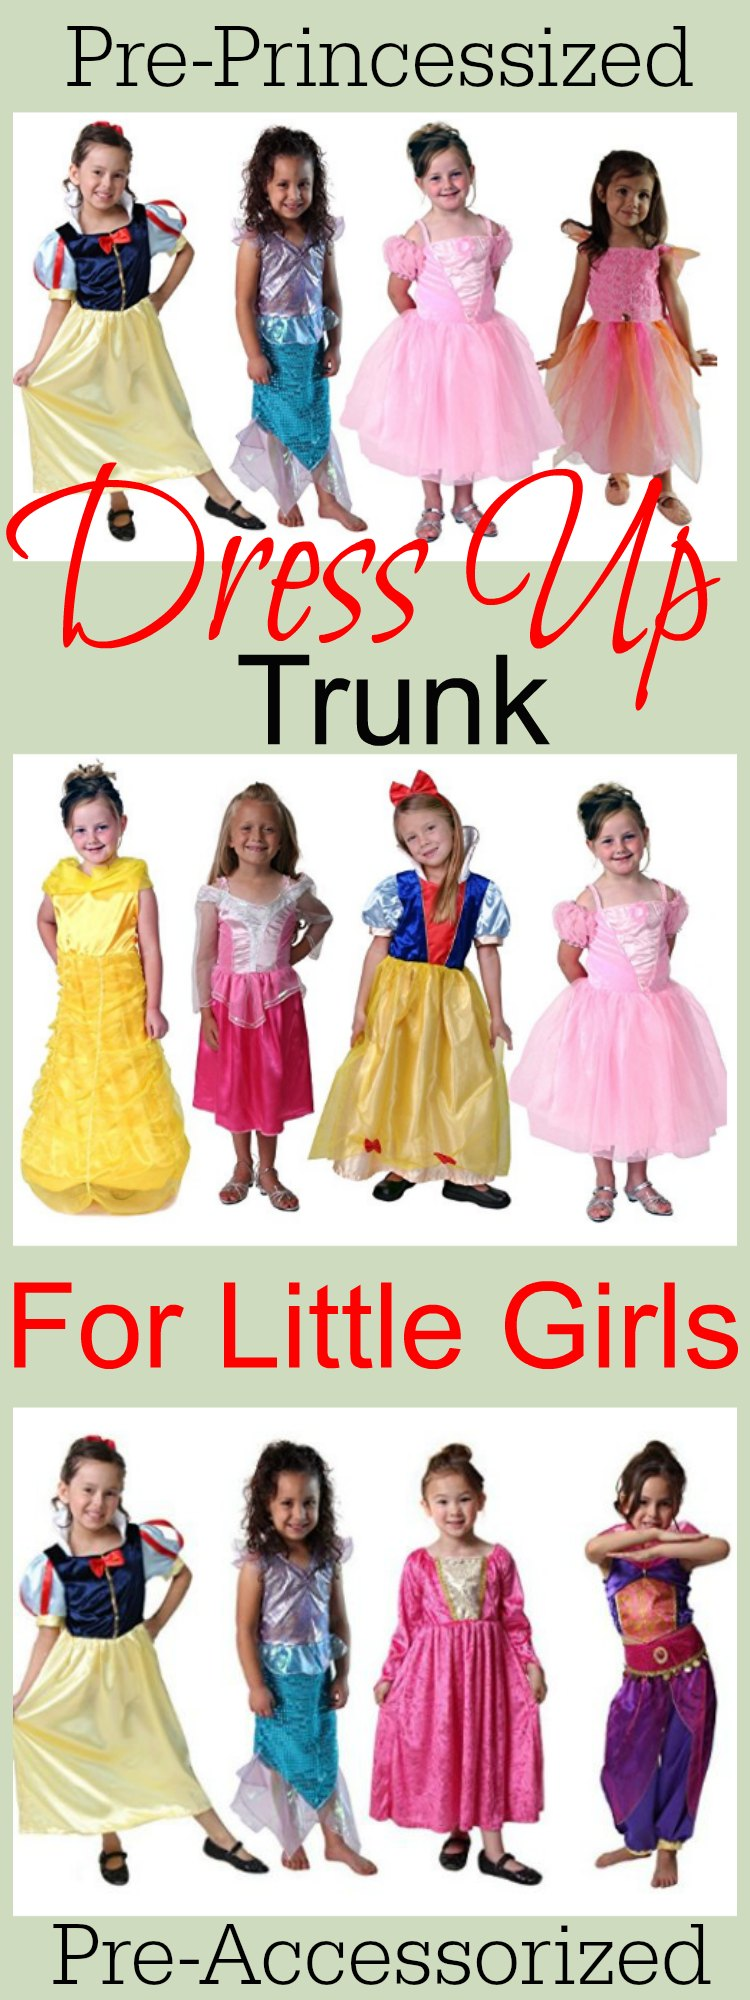 Dress Up Girls